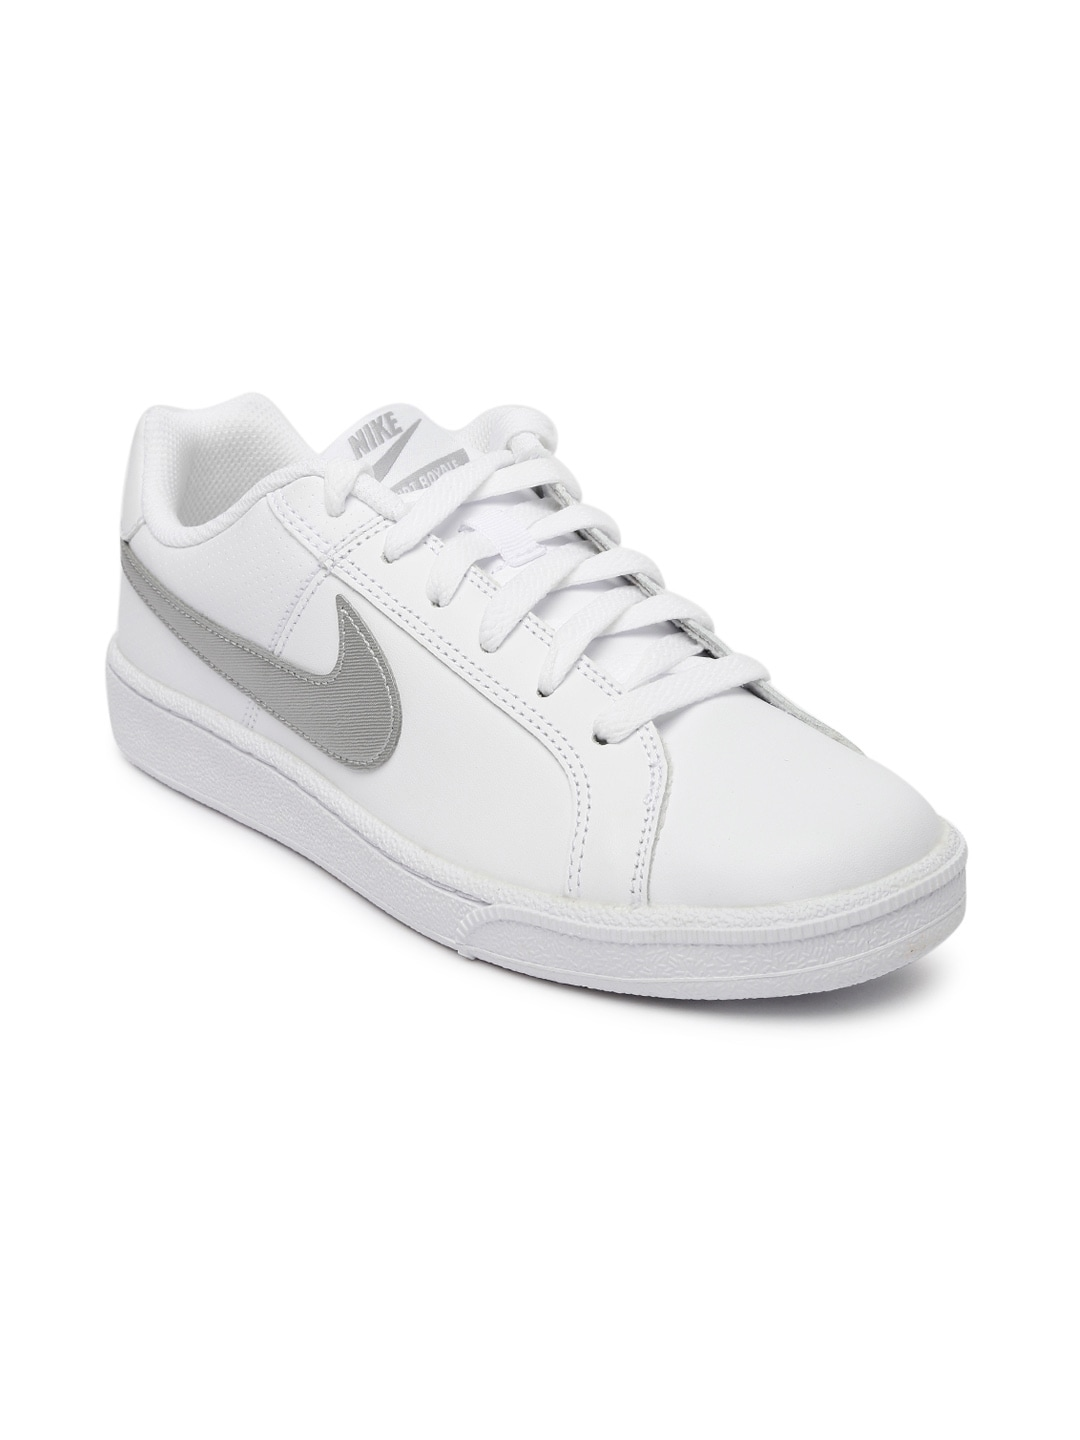 Buy Nike Women White EBERNON LOW Sneakers - Casual Shoes for Women ... 1103f0b1b3ed